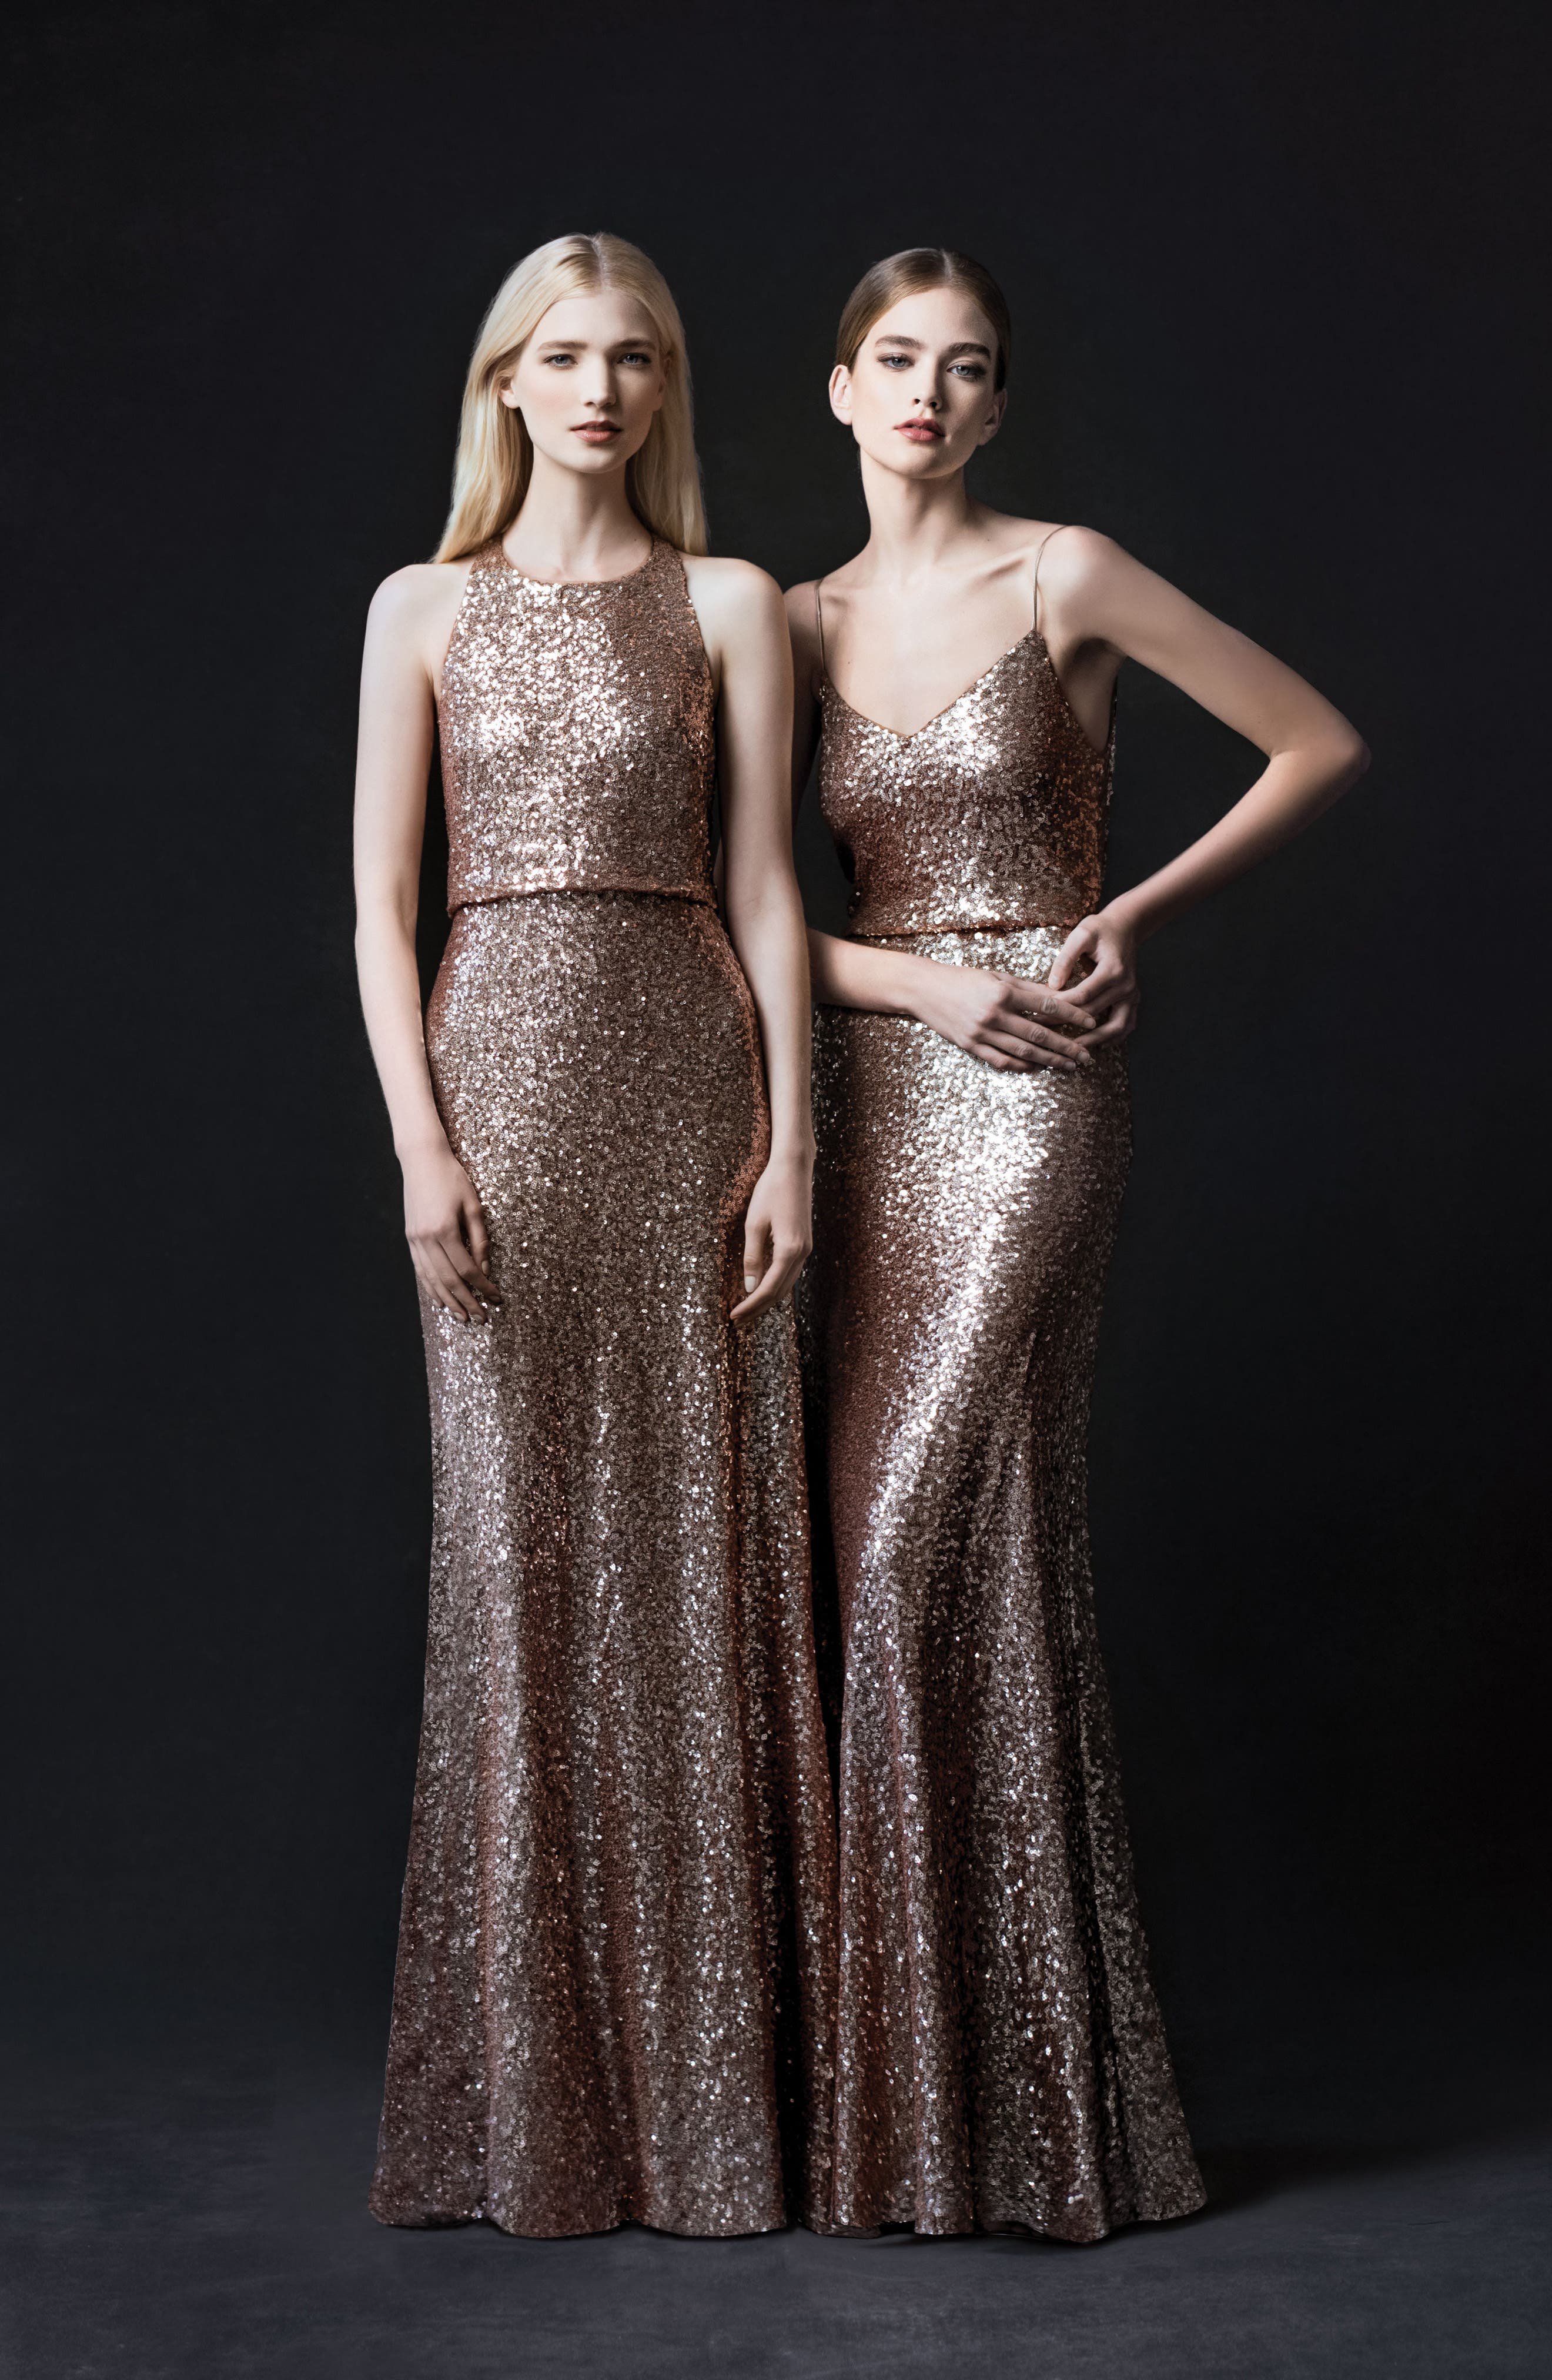 Jules Sequin Blouson Gown with Detachable Back Cowl,                             Alternate thumbnail 6, color,                             Rose Gold